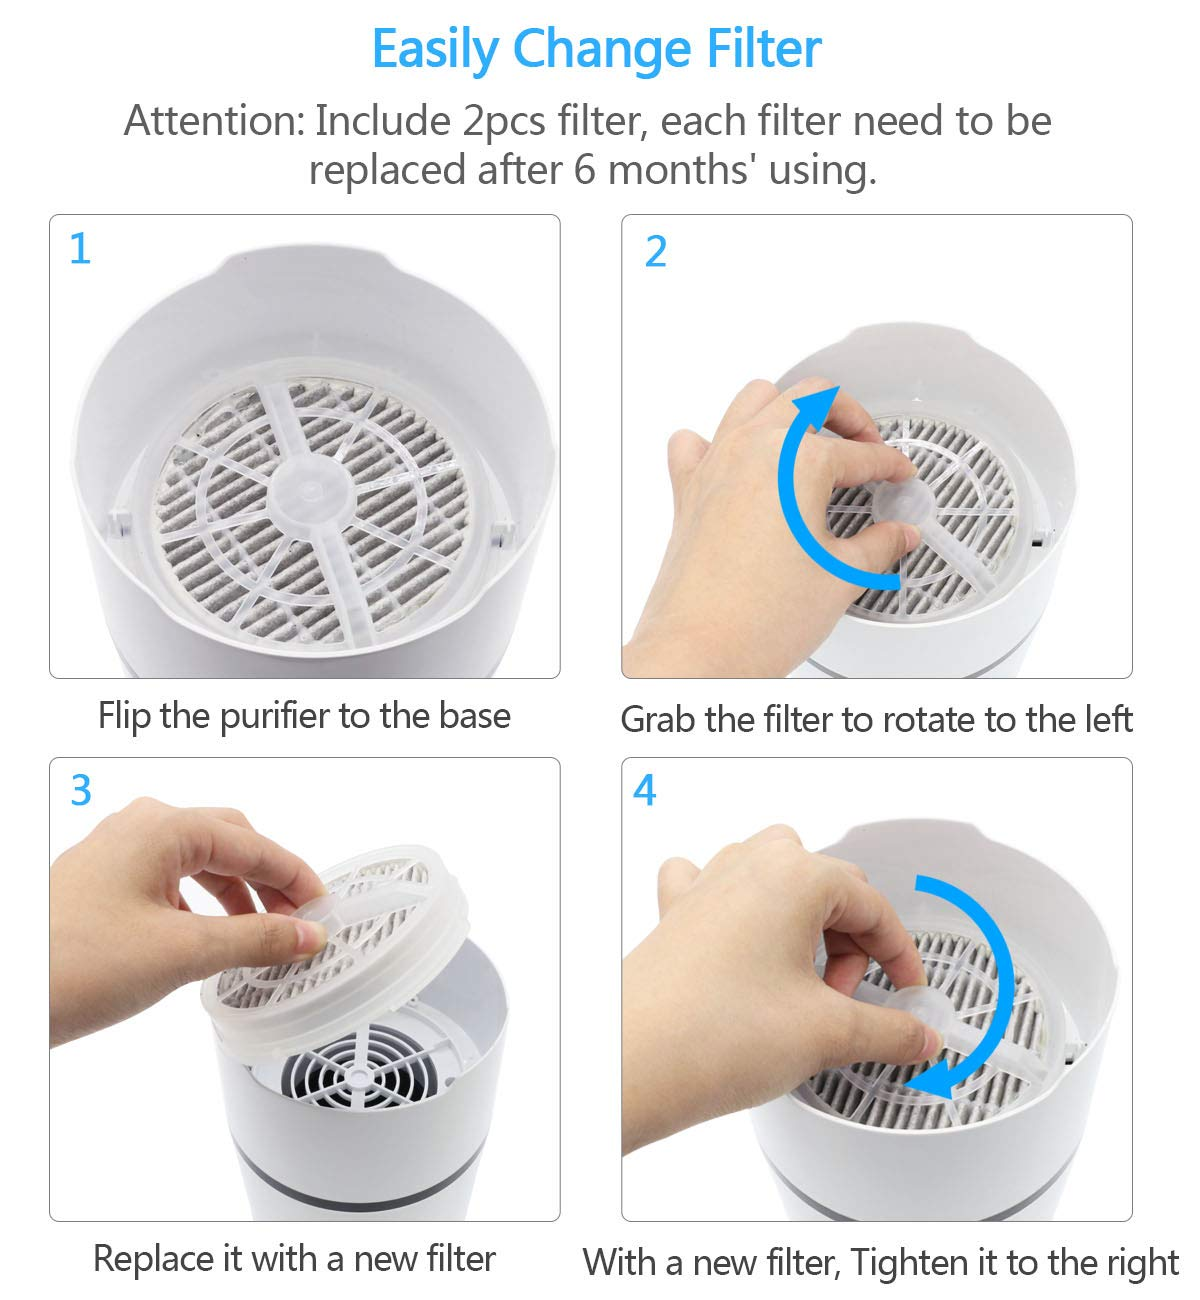 Desktop Air Purifier with 2Pcs HEPA Filters Replaced Pet Dander Portable Air Cleaner with Night Light for Home Bedroom Office Car Allergies Remove Pollen Dust Smoke